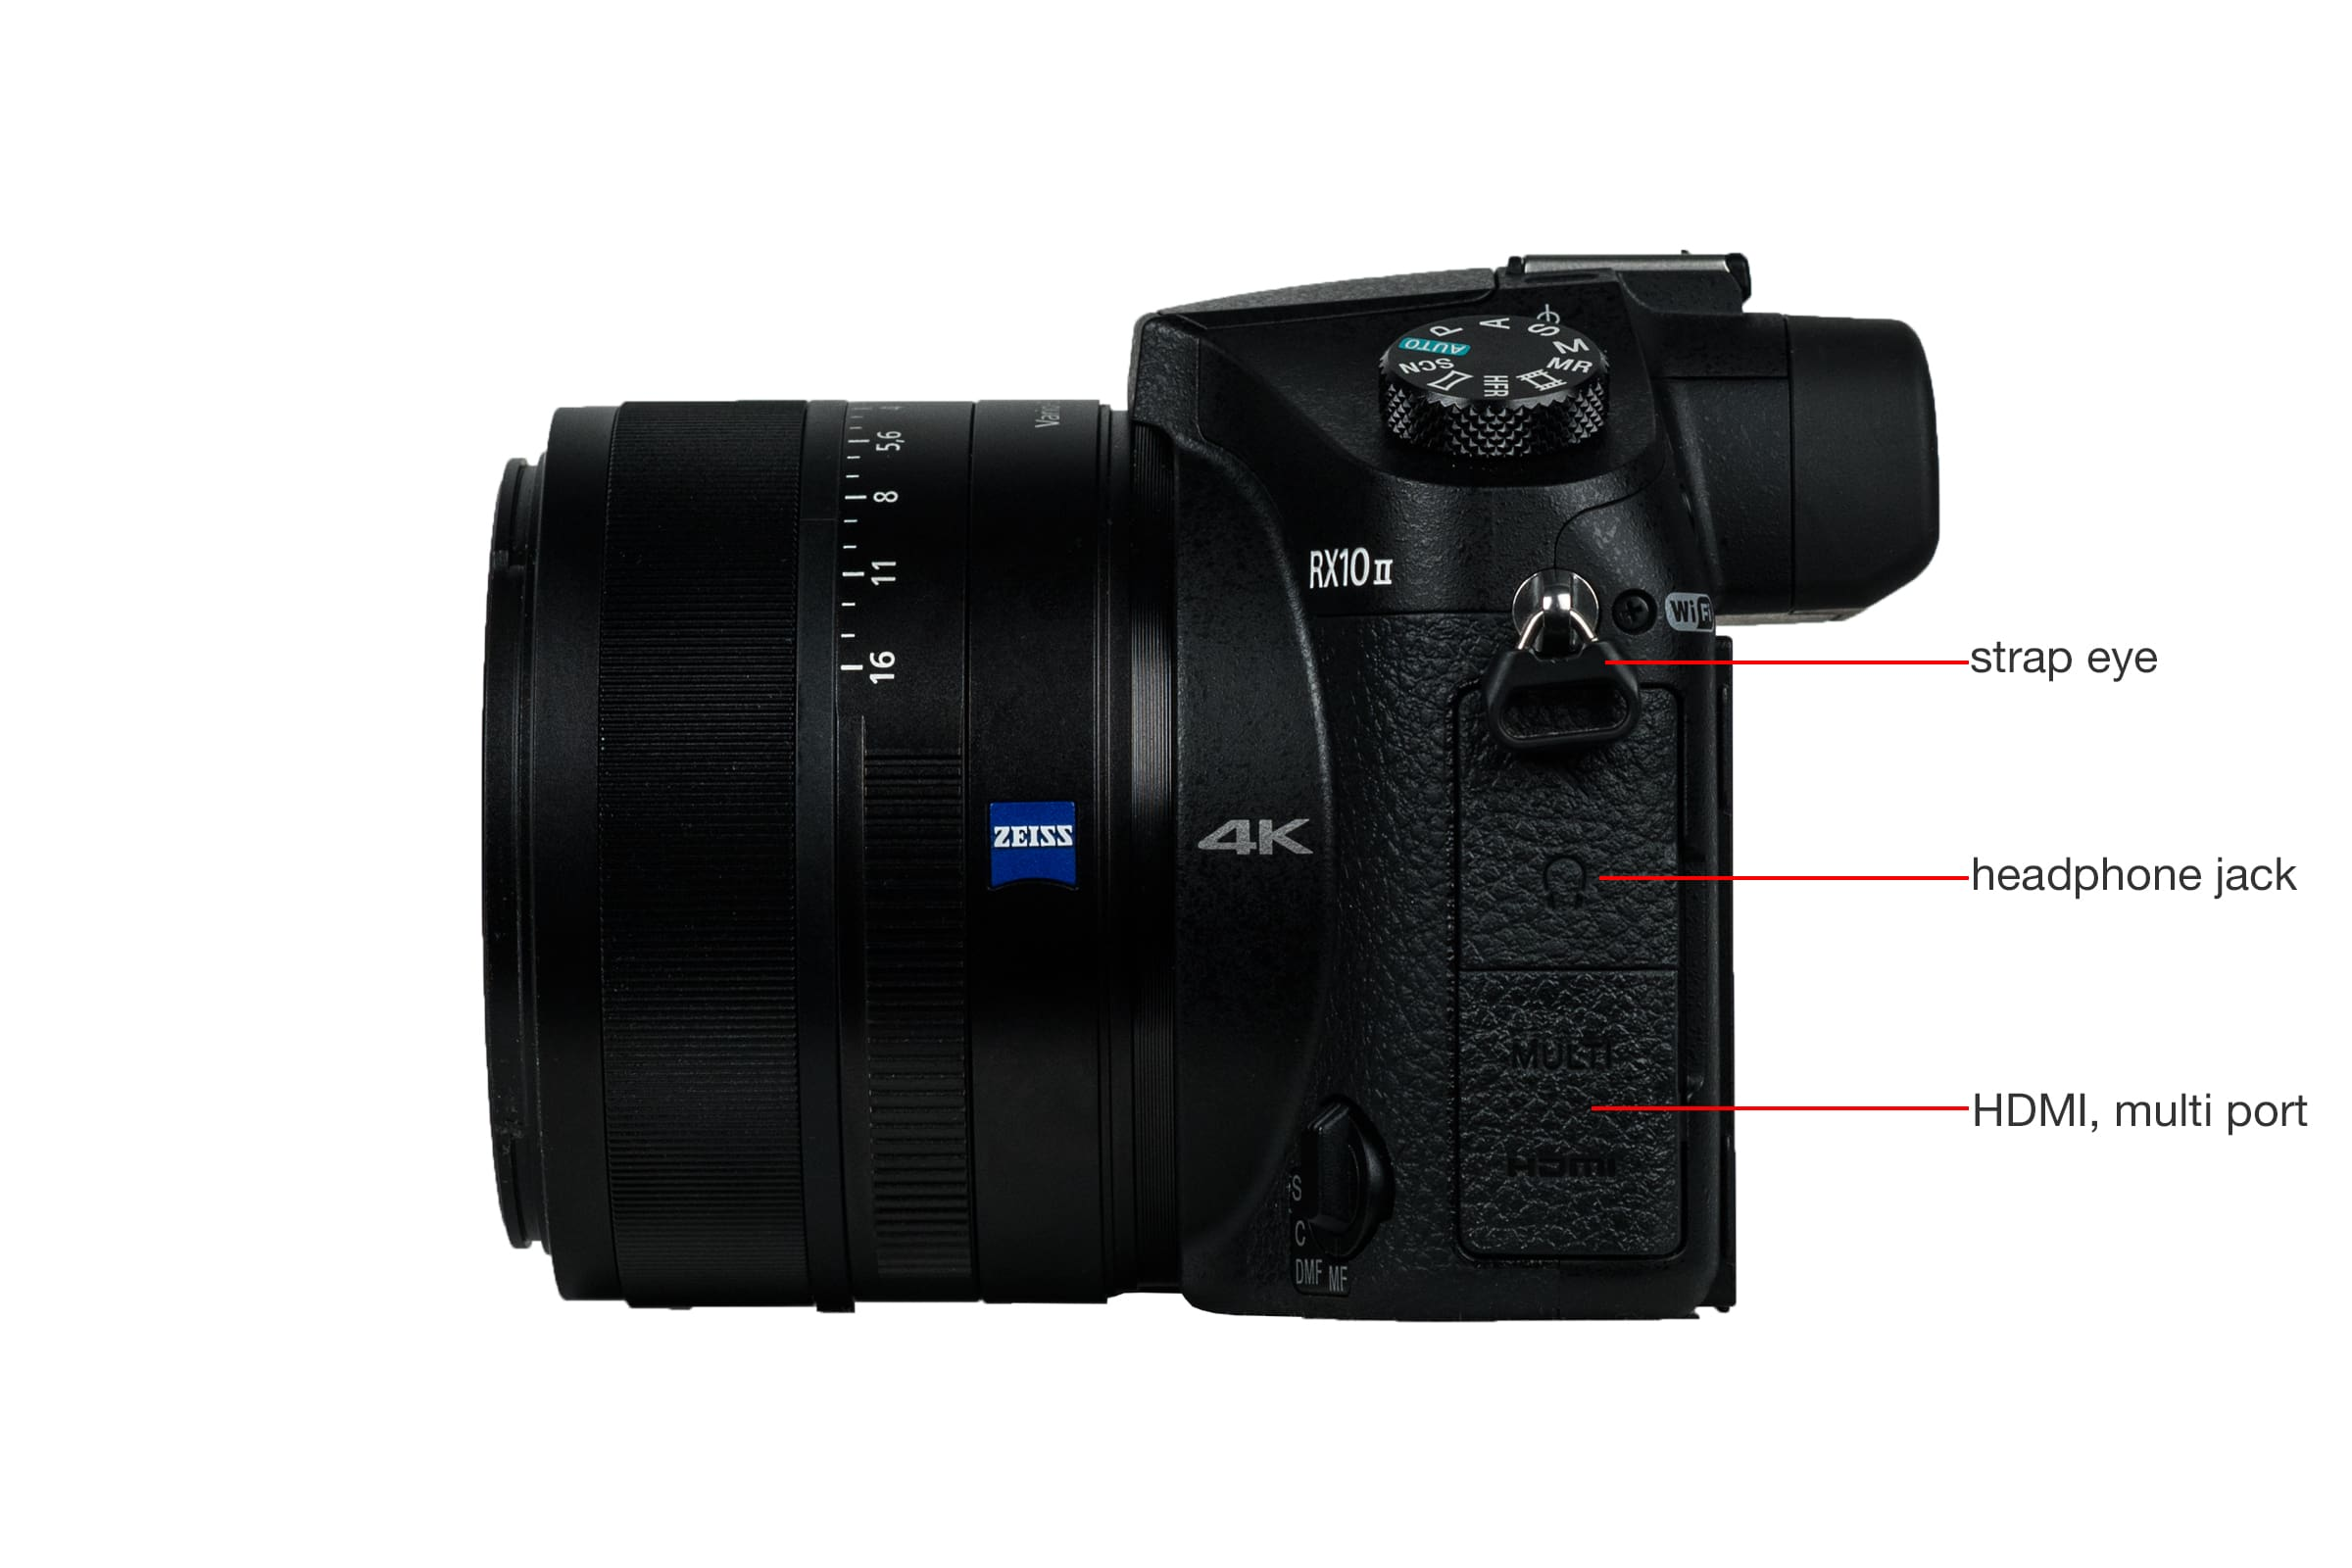 Left side view of the Sony Cyber-Shot RX10 II.